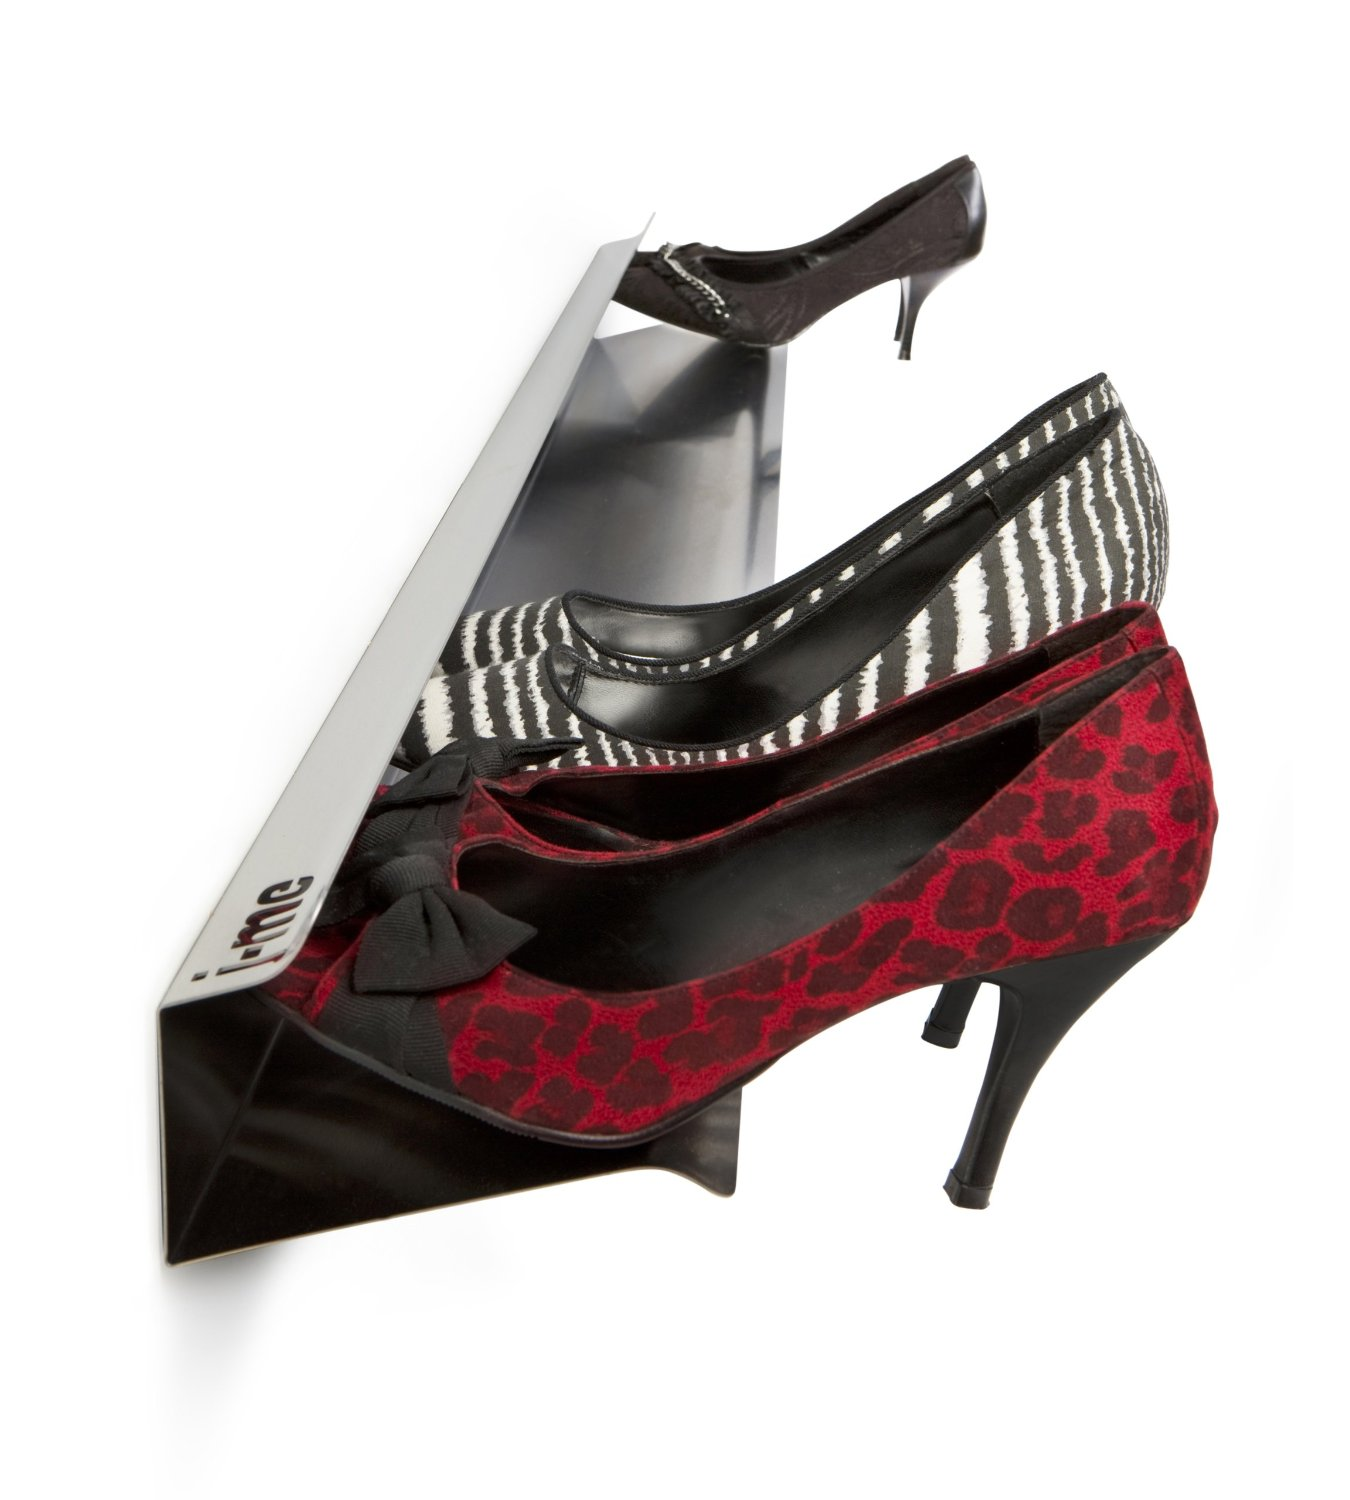 J me design stylish 1200mm high heel shoe rack display Stylish shoe rack